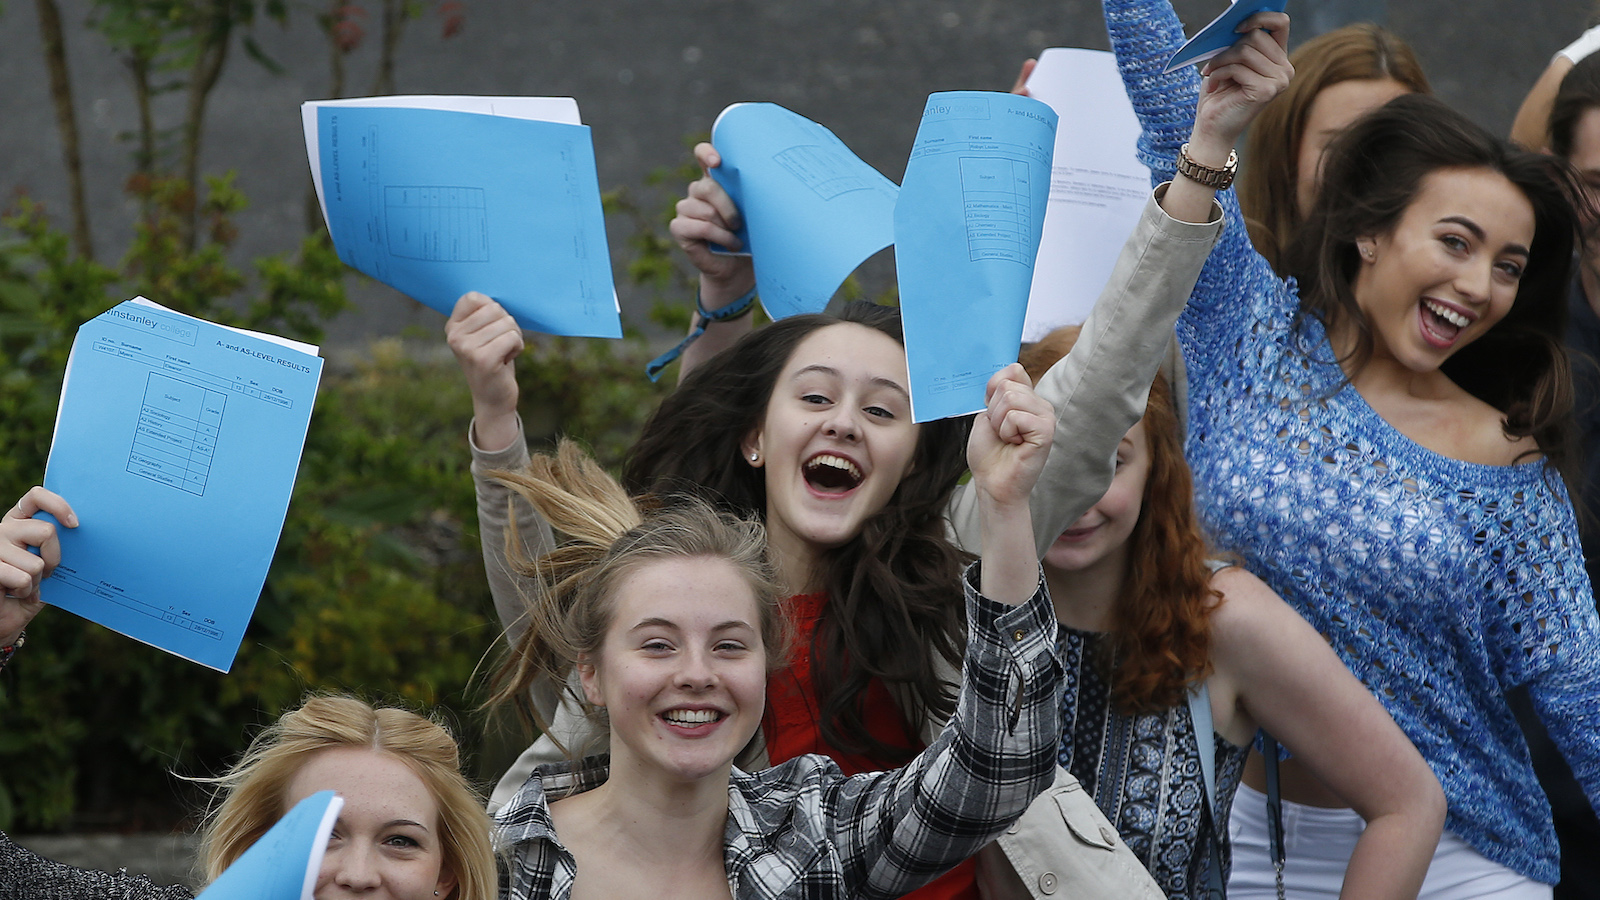 Students celebrate after receiving their A-level results at Winstanley College in Wigan